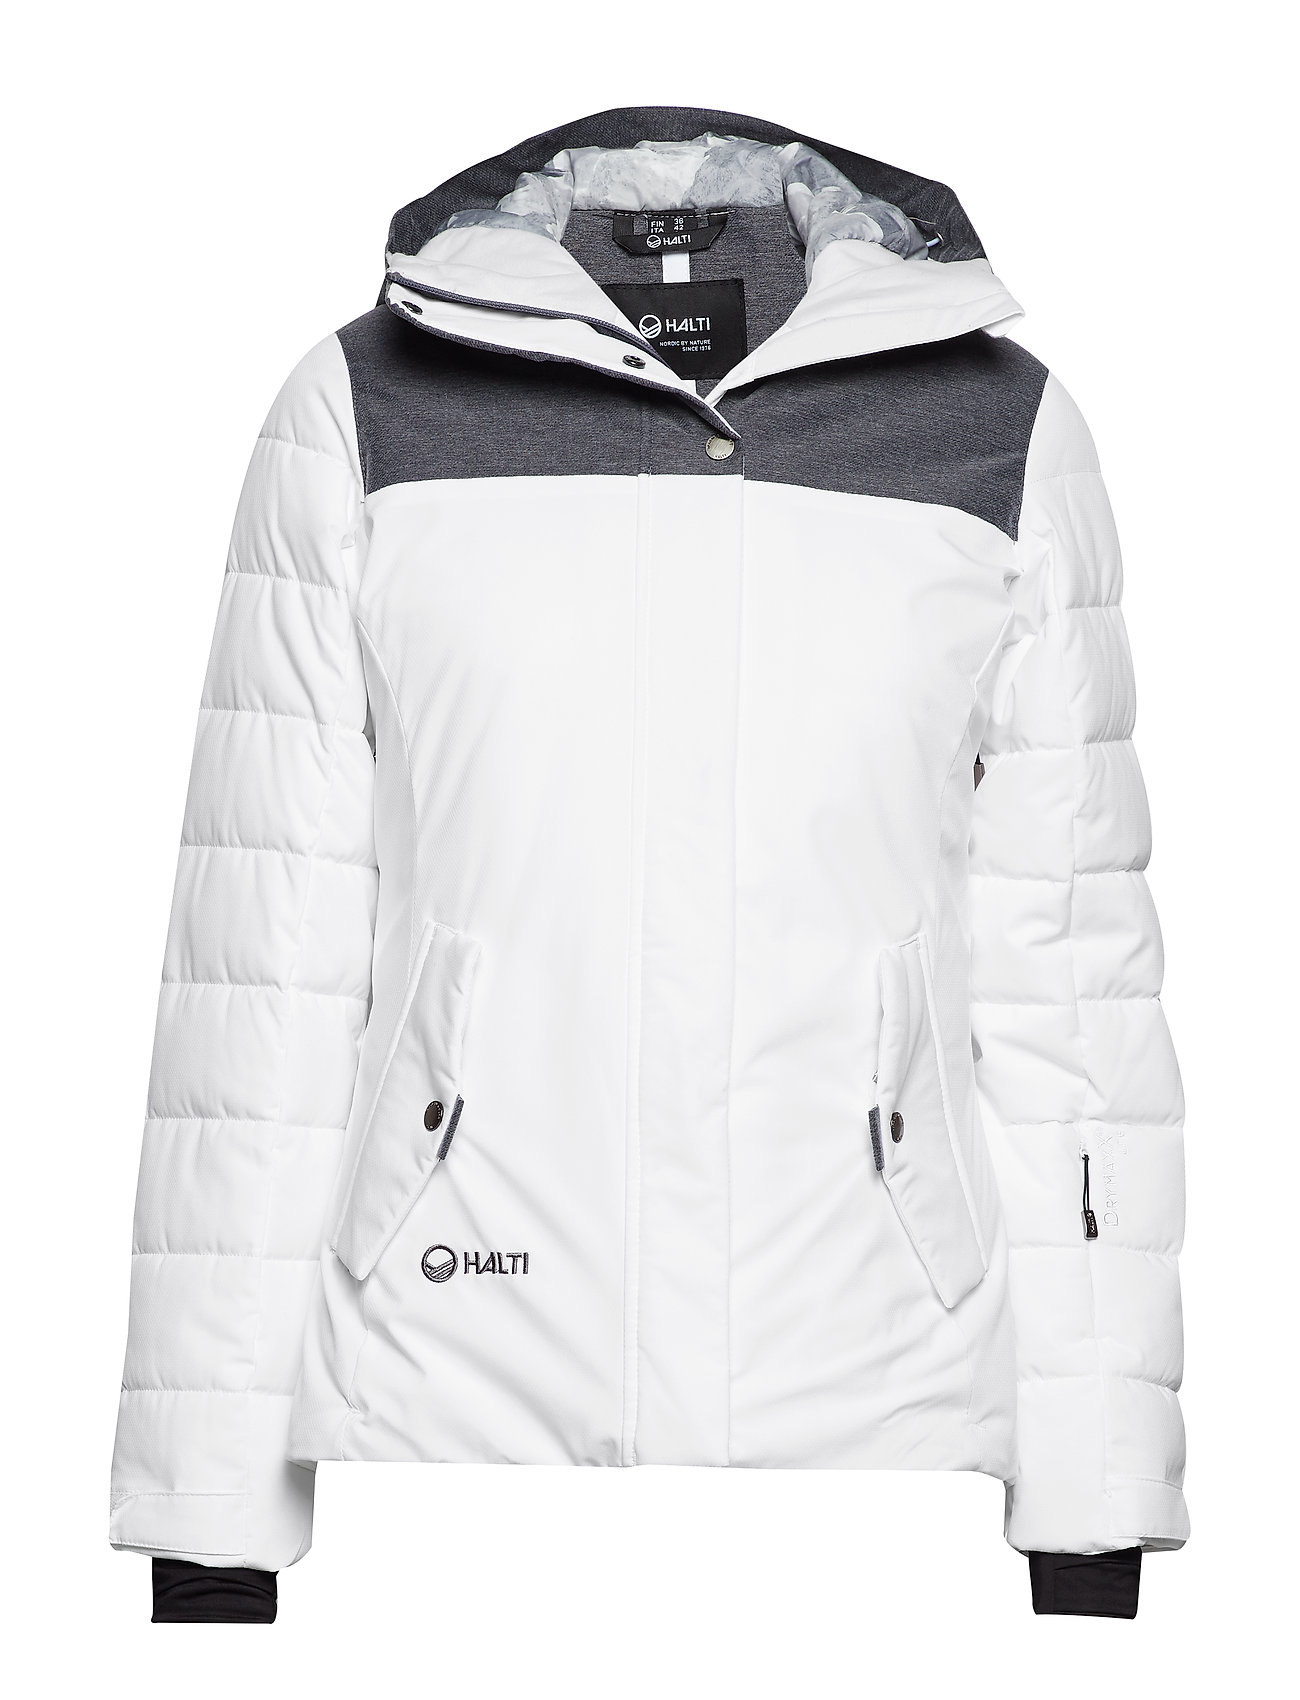 Halti Kilta W DX warm ski jacket